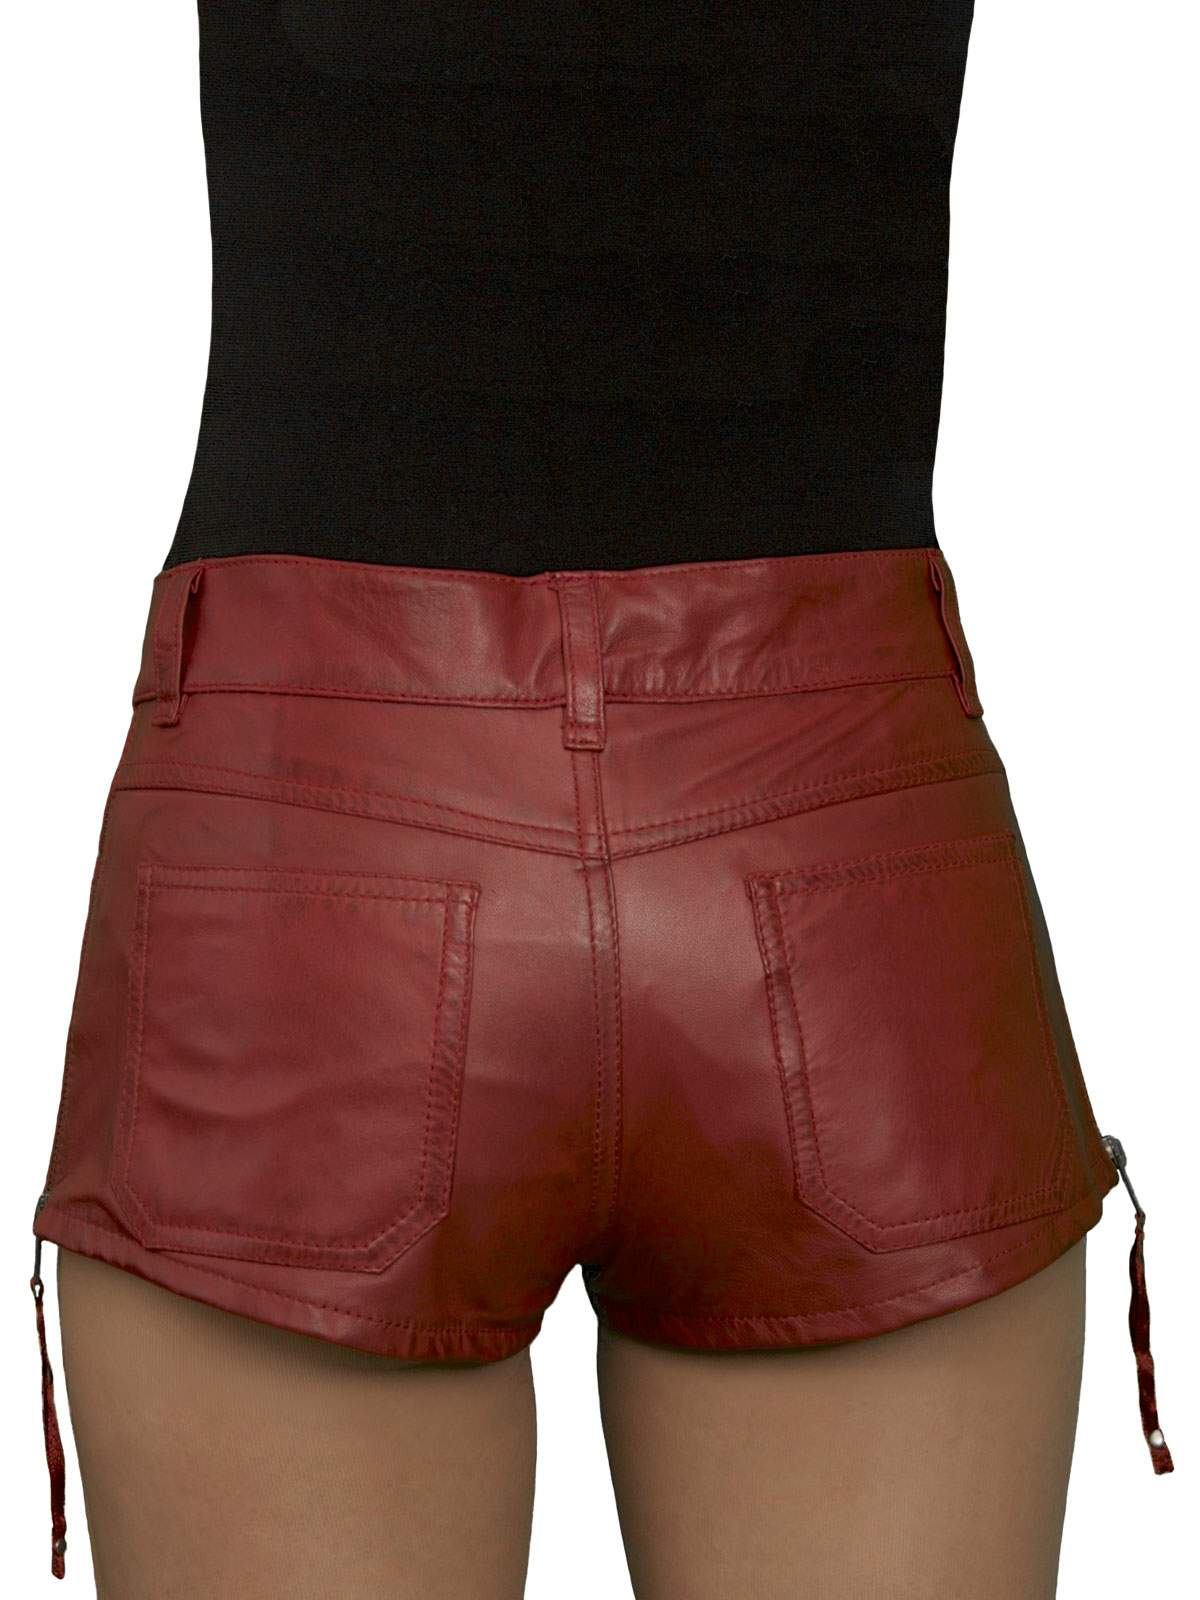 red leather boxer short